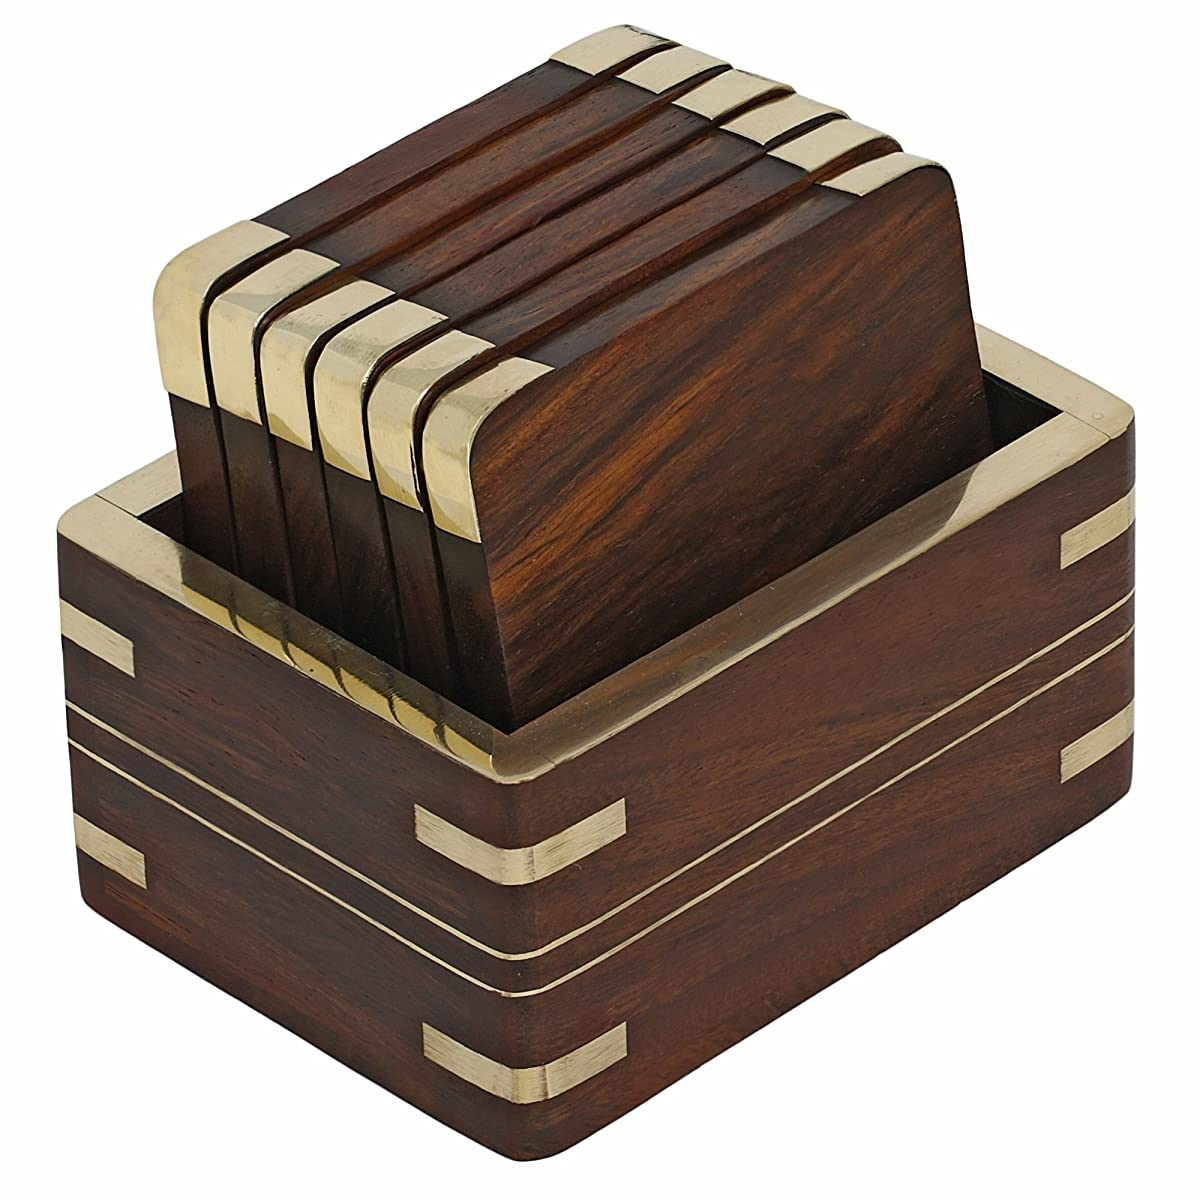 Wood Coaster Holder Wooden Tea Coasters And Holder Set With Golden Brass